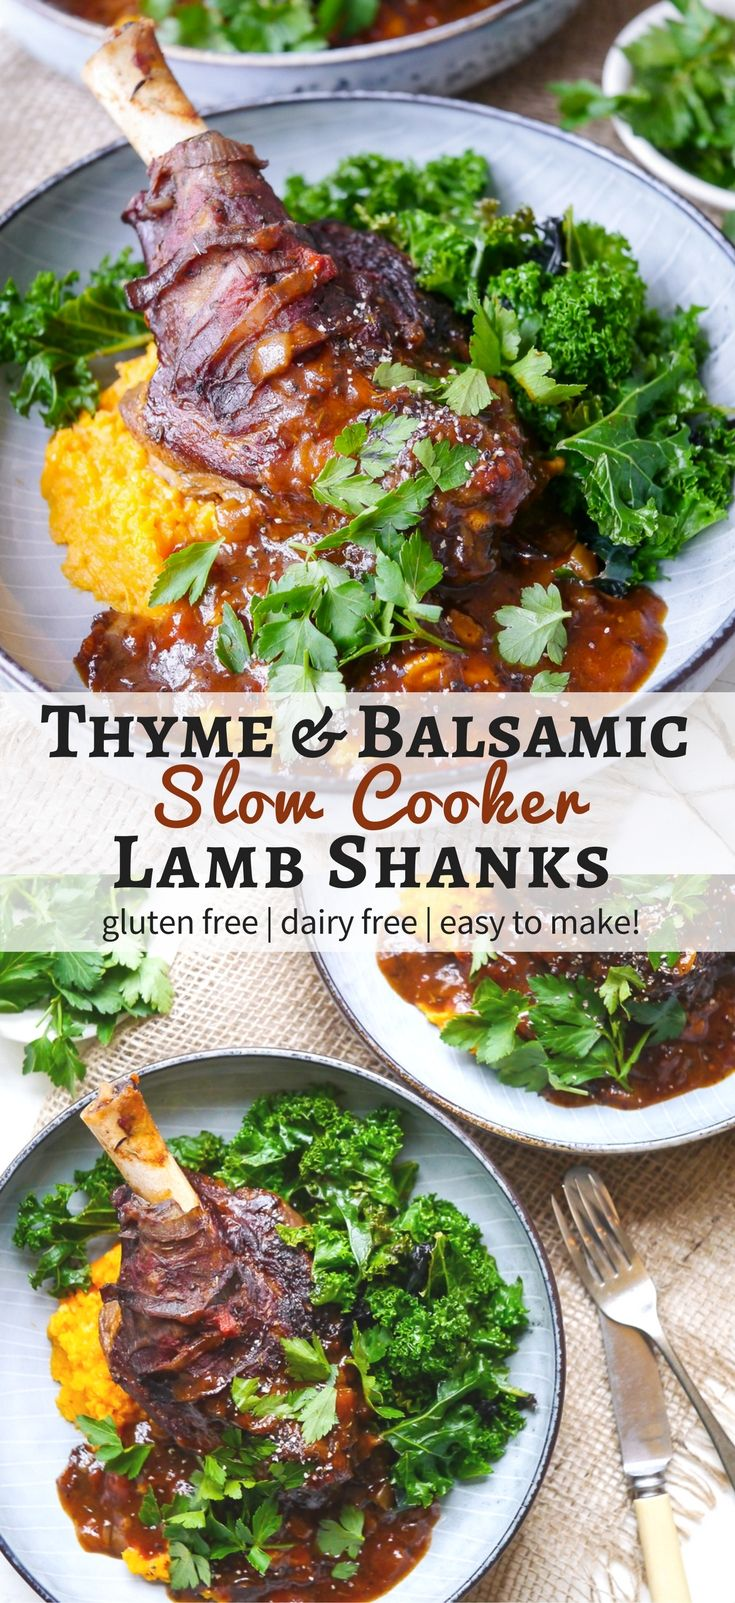 25+ best ideas about Lamb shanks slow cooker on Pinterest ...